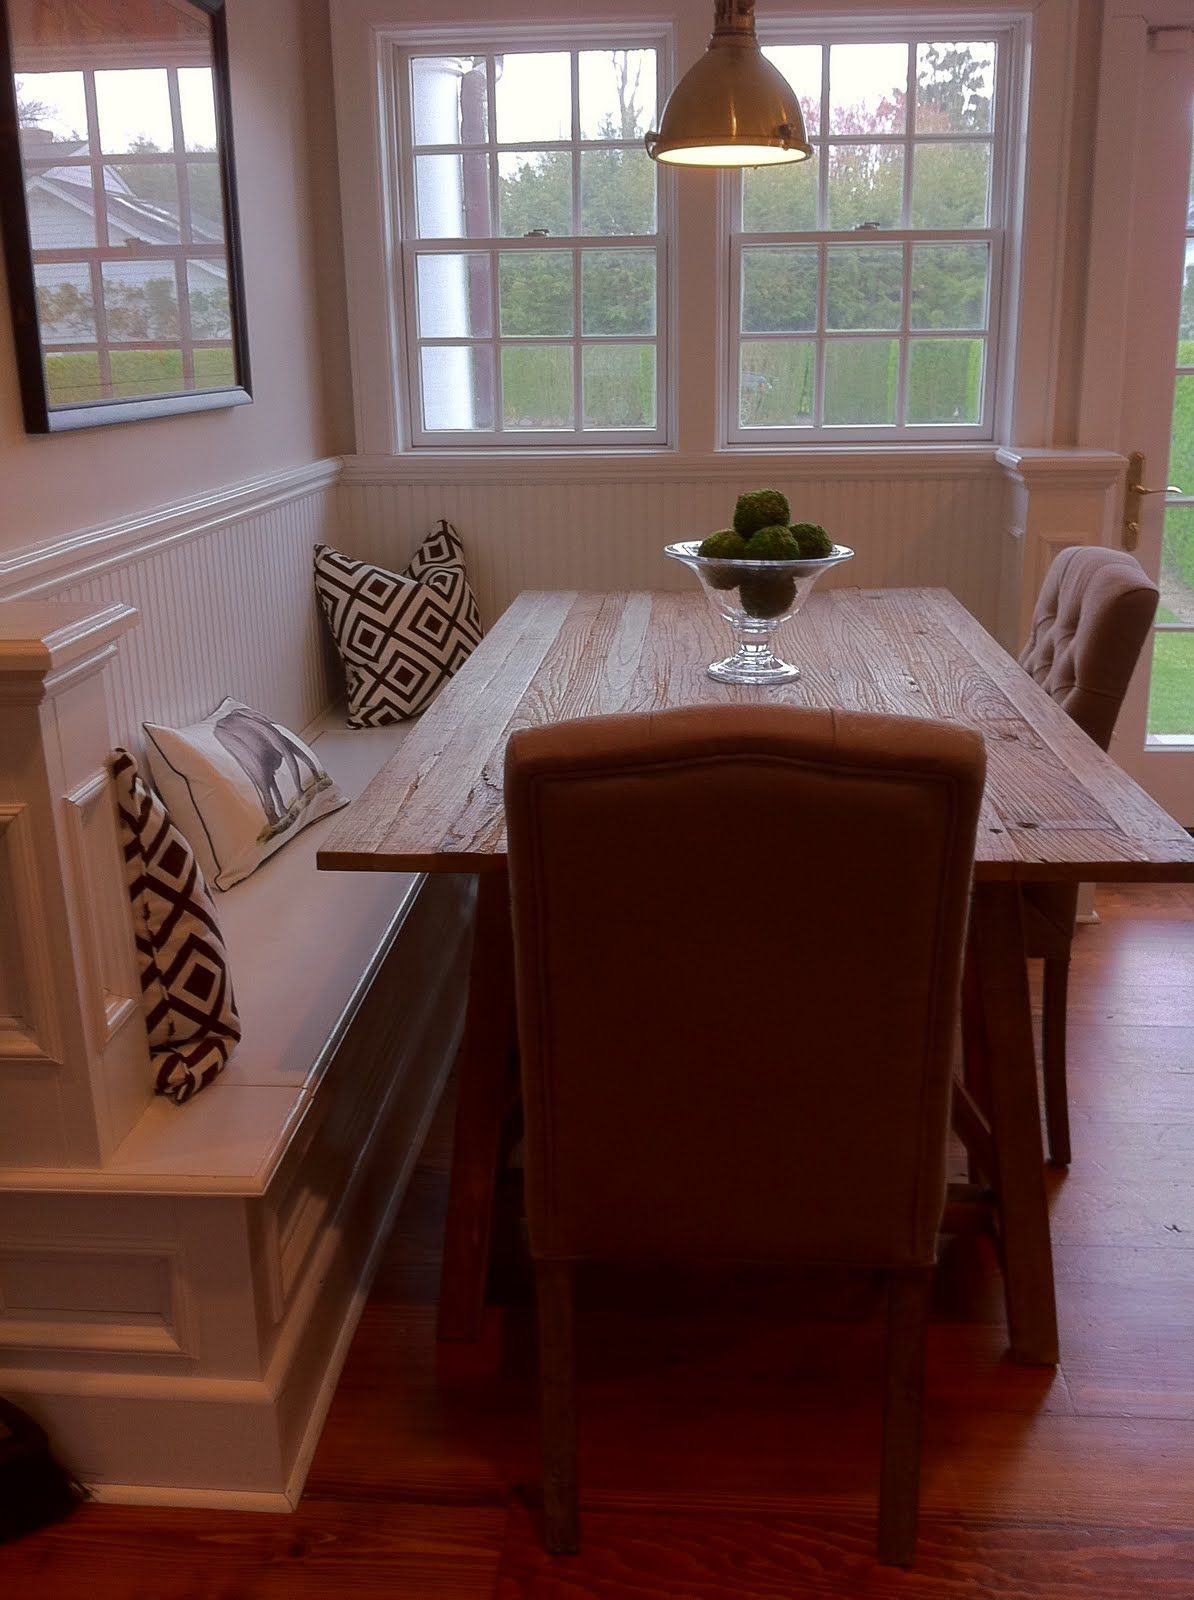 Kitchen Table With Built In Bench corner bench with dining table. this could be perfect as a half